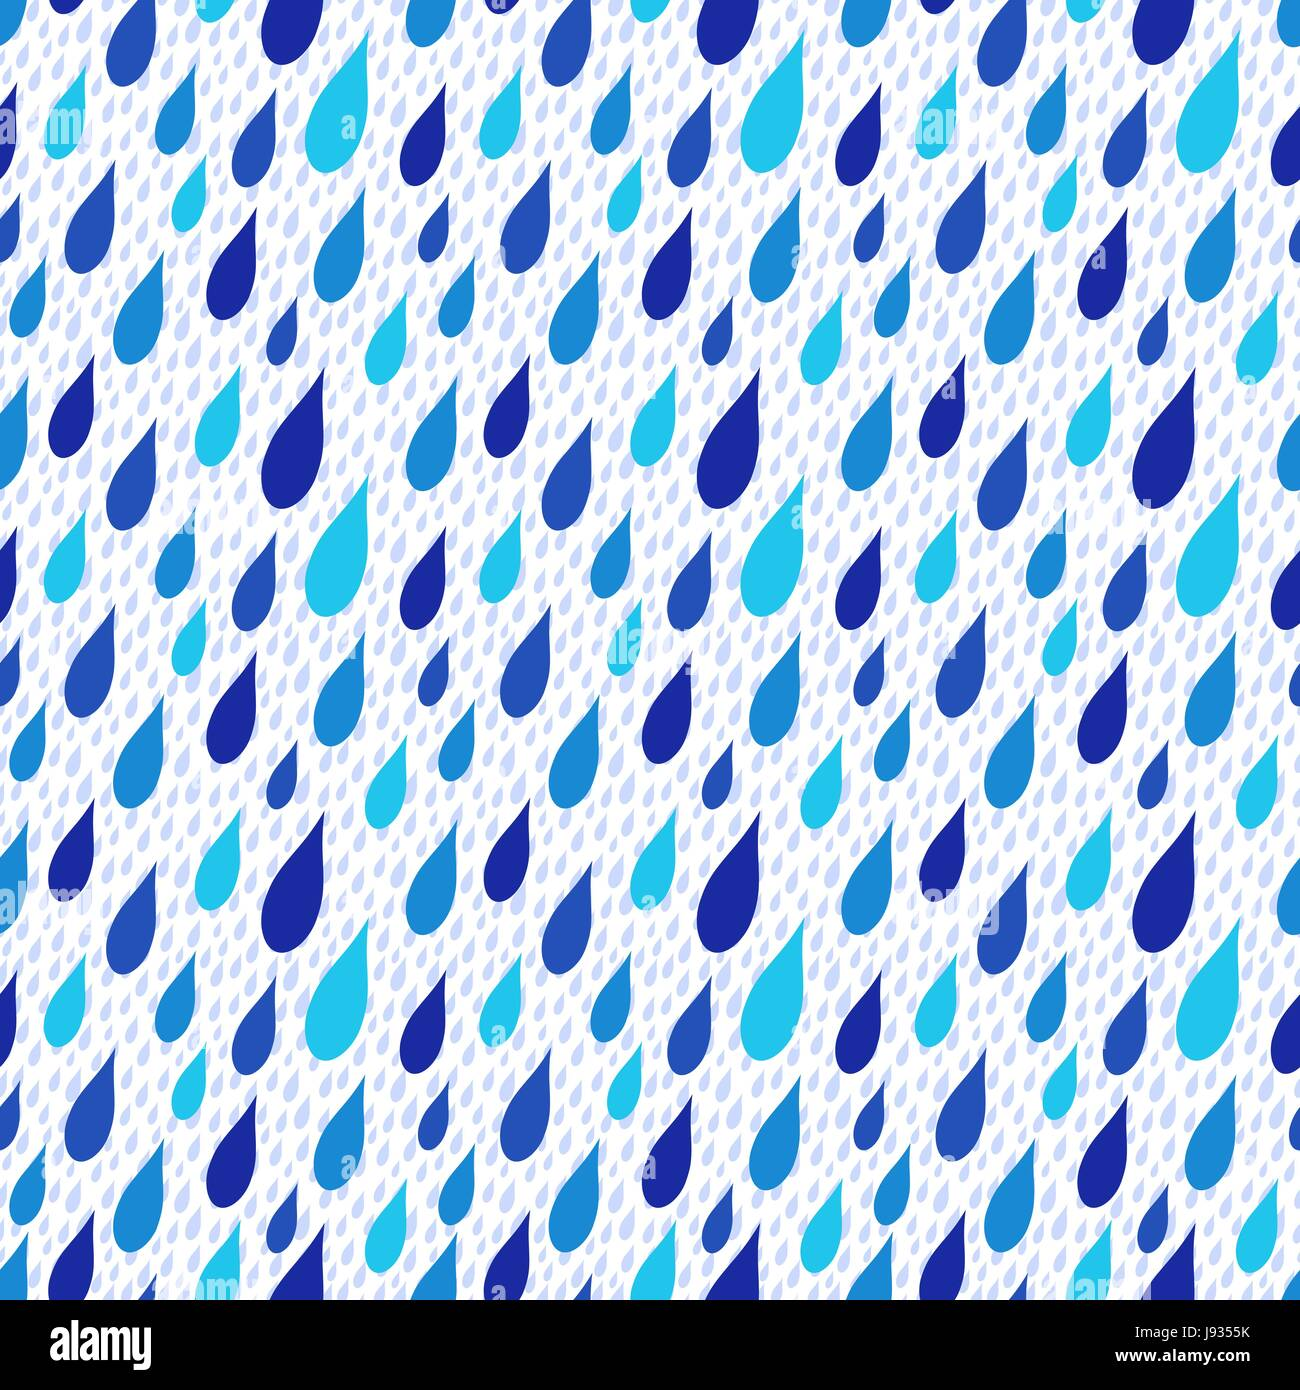 Rain drops falling obliquely, stylised seamless vector background in blue hues over white - Stock Vector